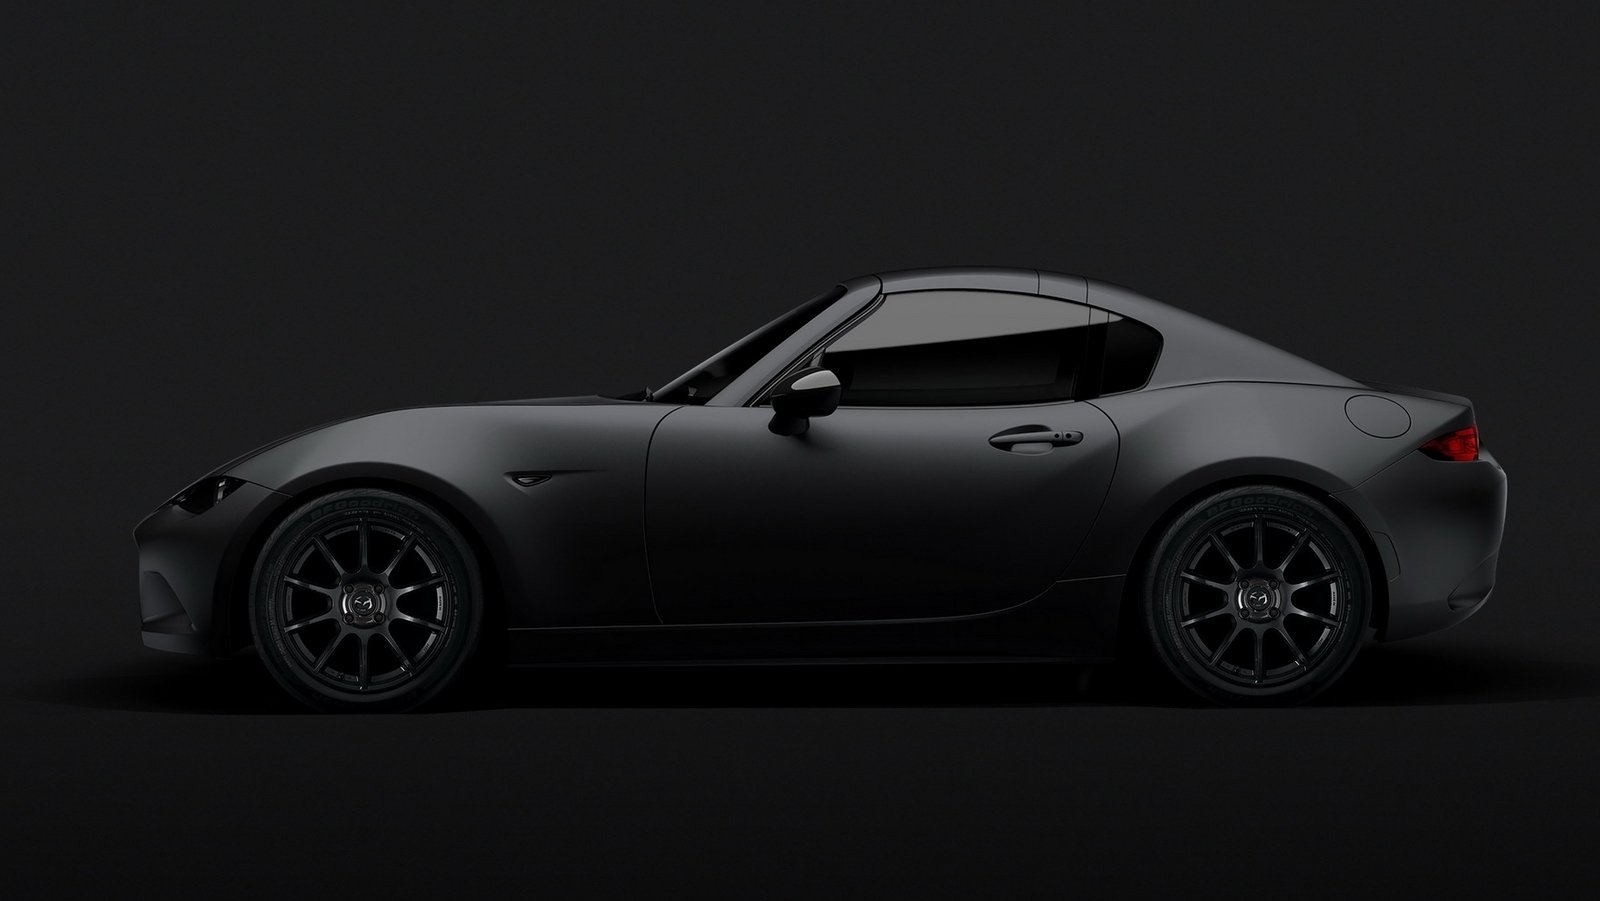 Ford Com Mx >> 2017 Mazda MX-5 RF Kuro Pictures, Photos, Wallpapers ...